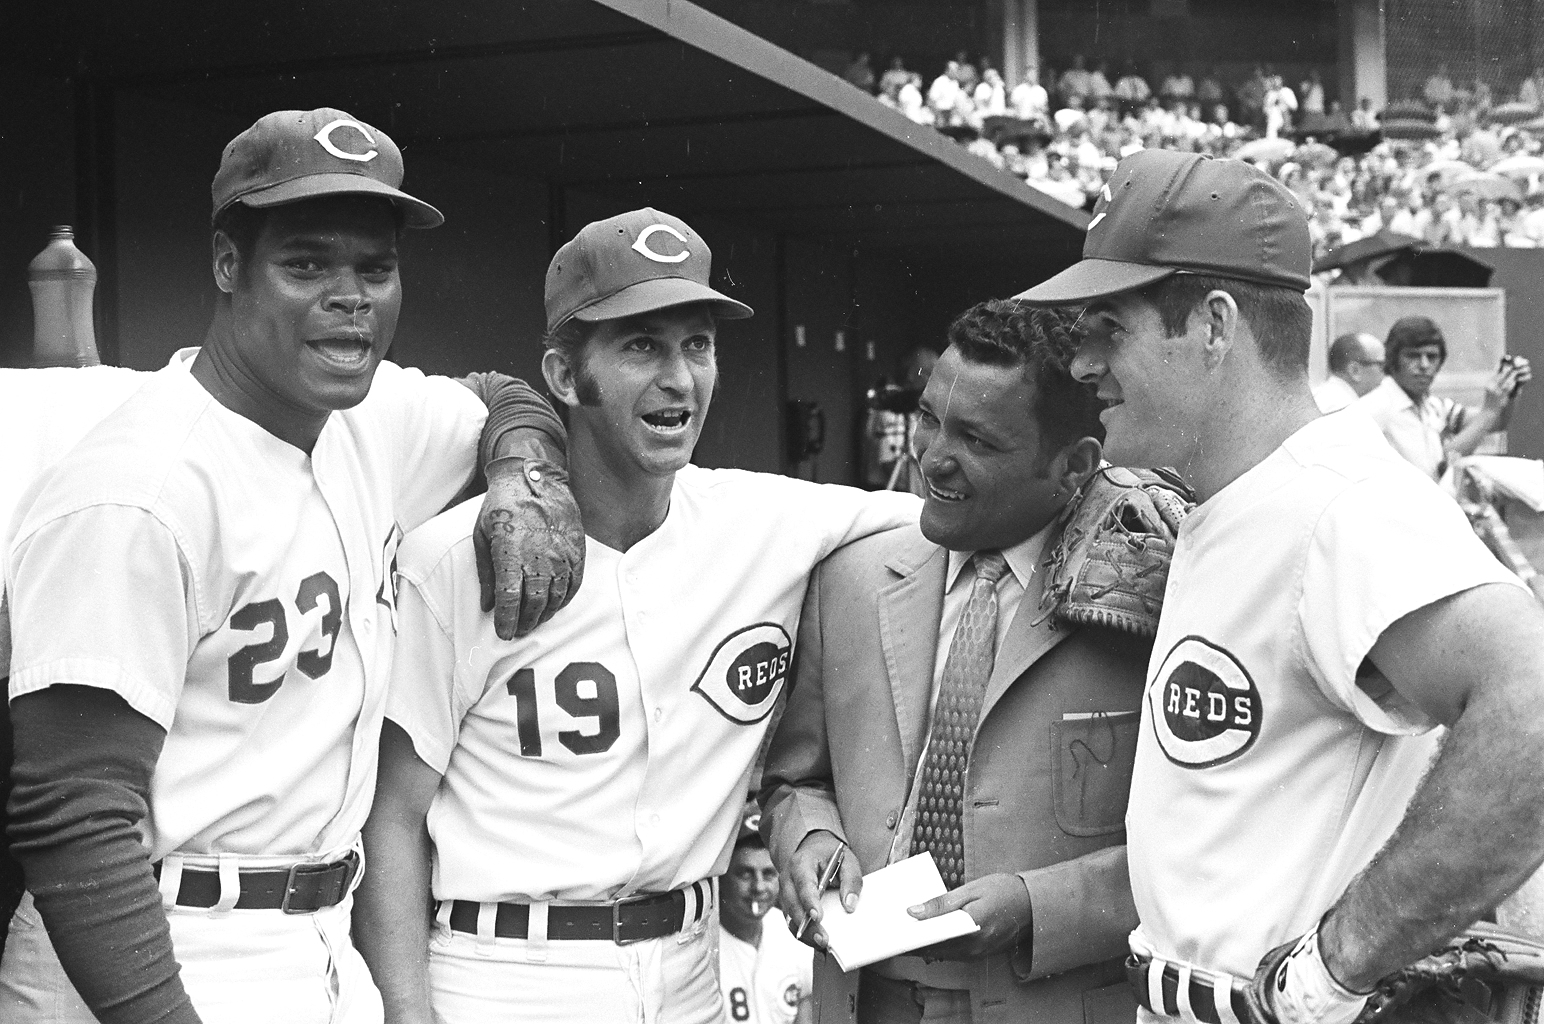 (Left to right): Lee May, Tommy Helms, Pete Rose (far right), 1970 or 1971 regular season, Riverfront Stadium.